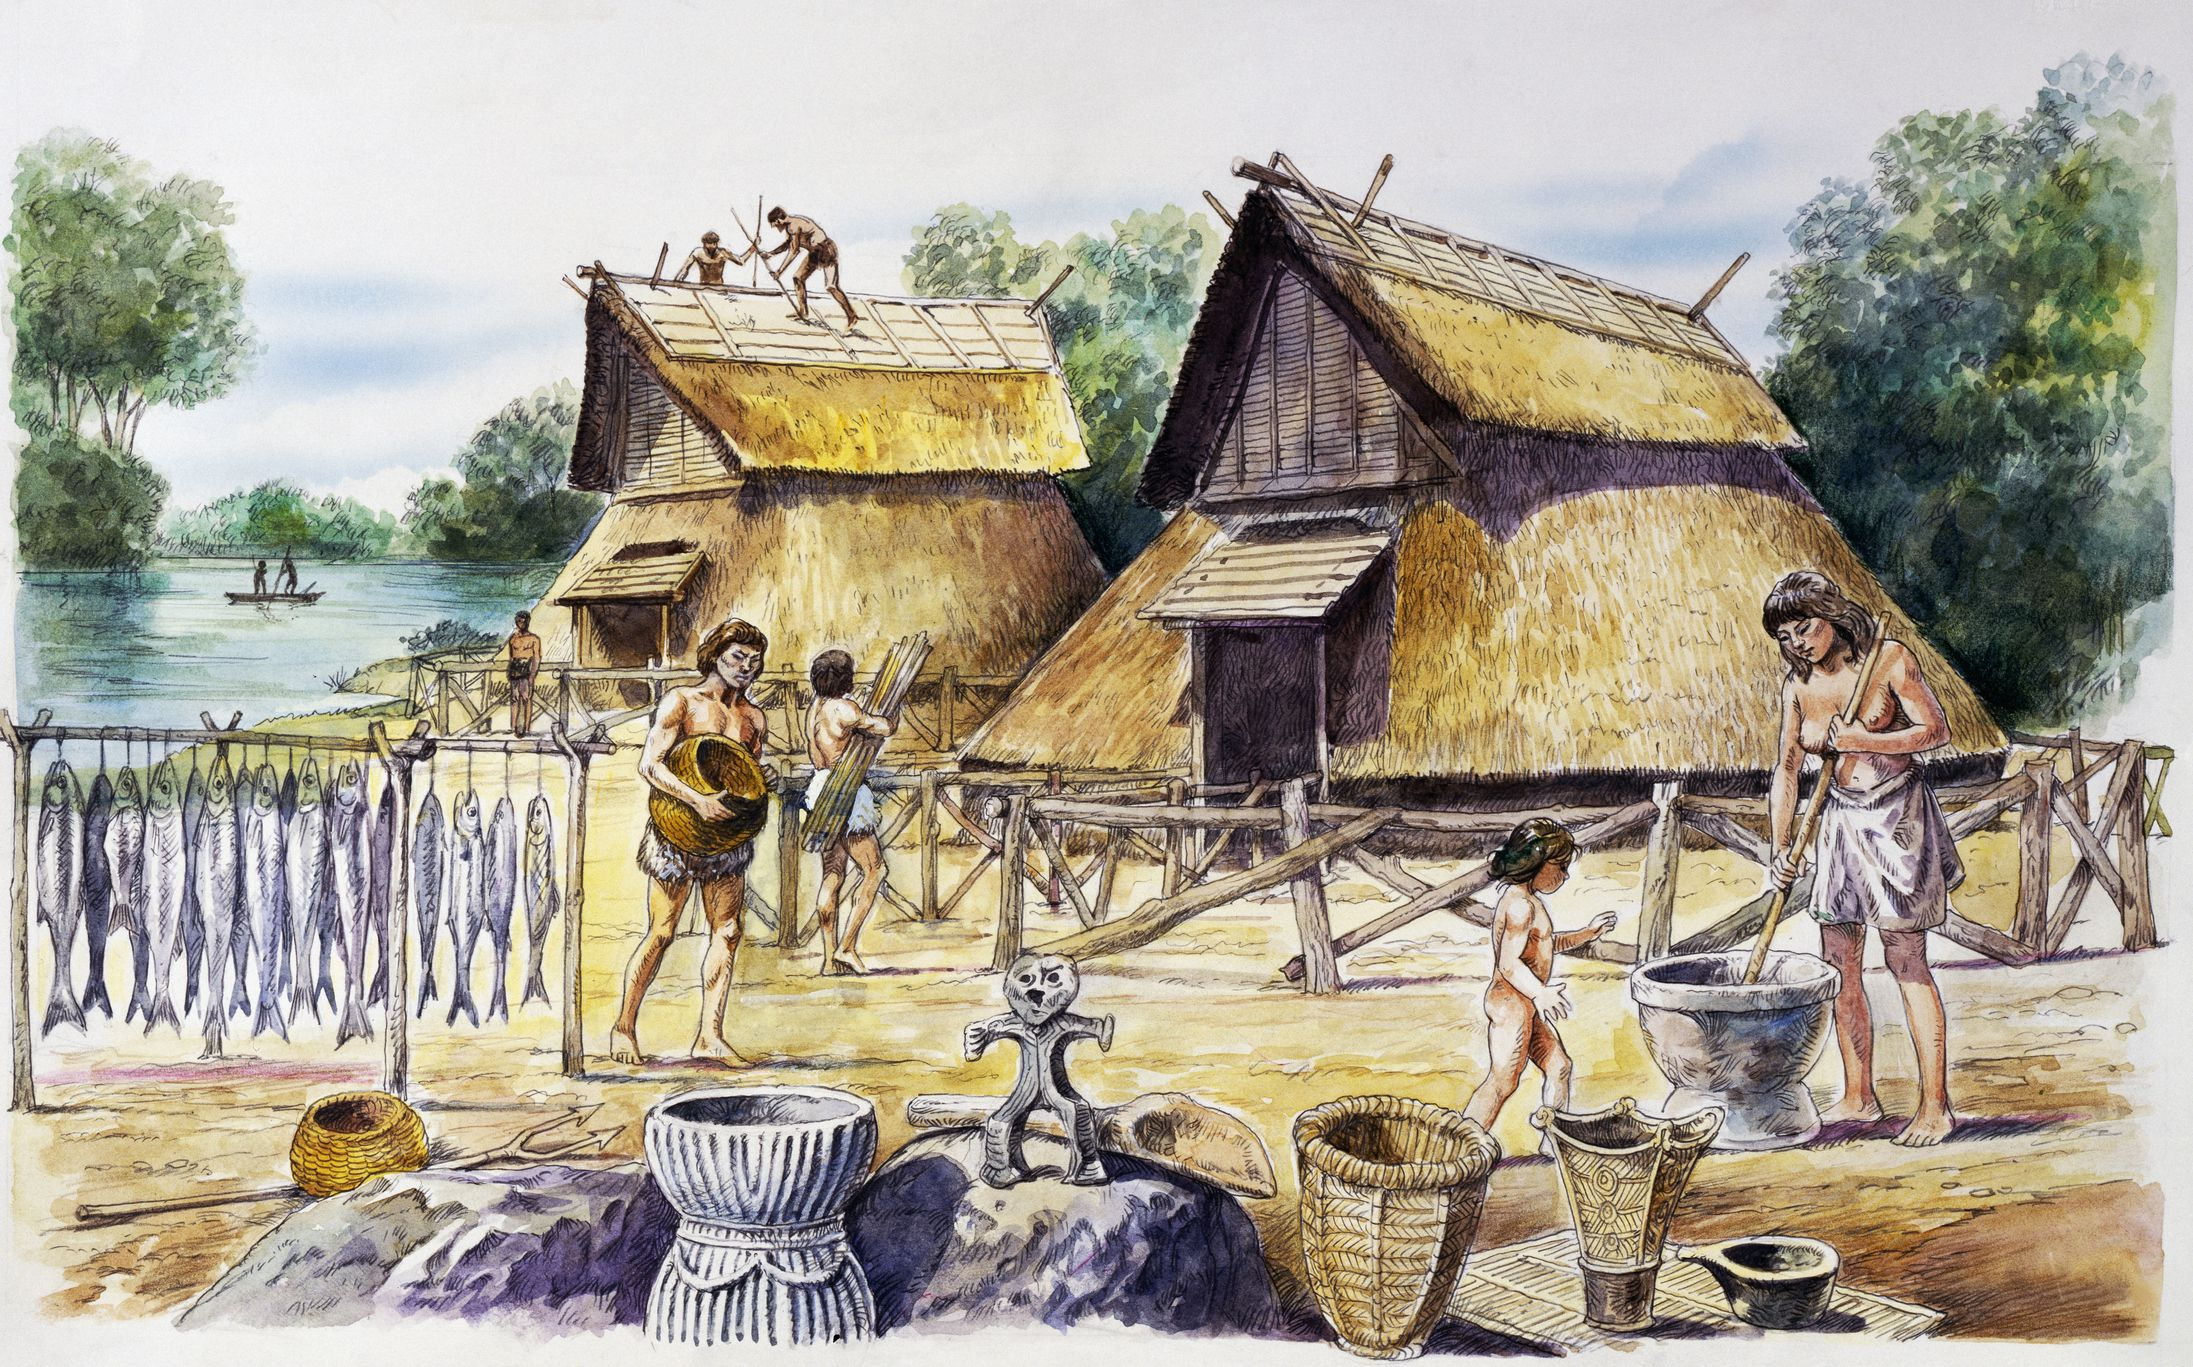 A Country Study On The Ancient Cultures Of Japan